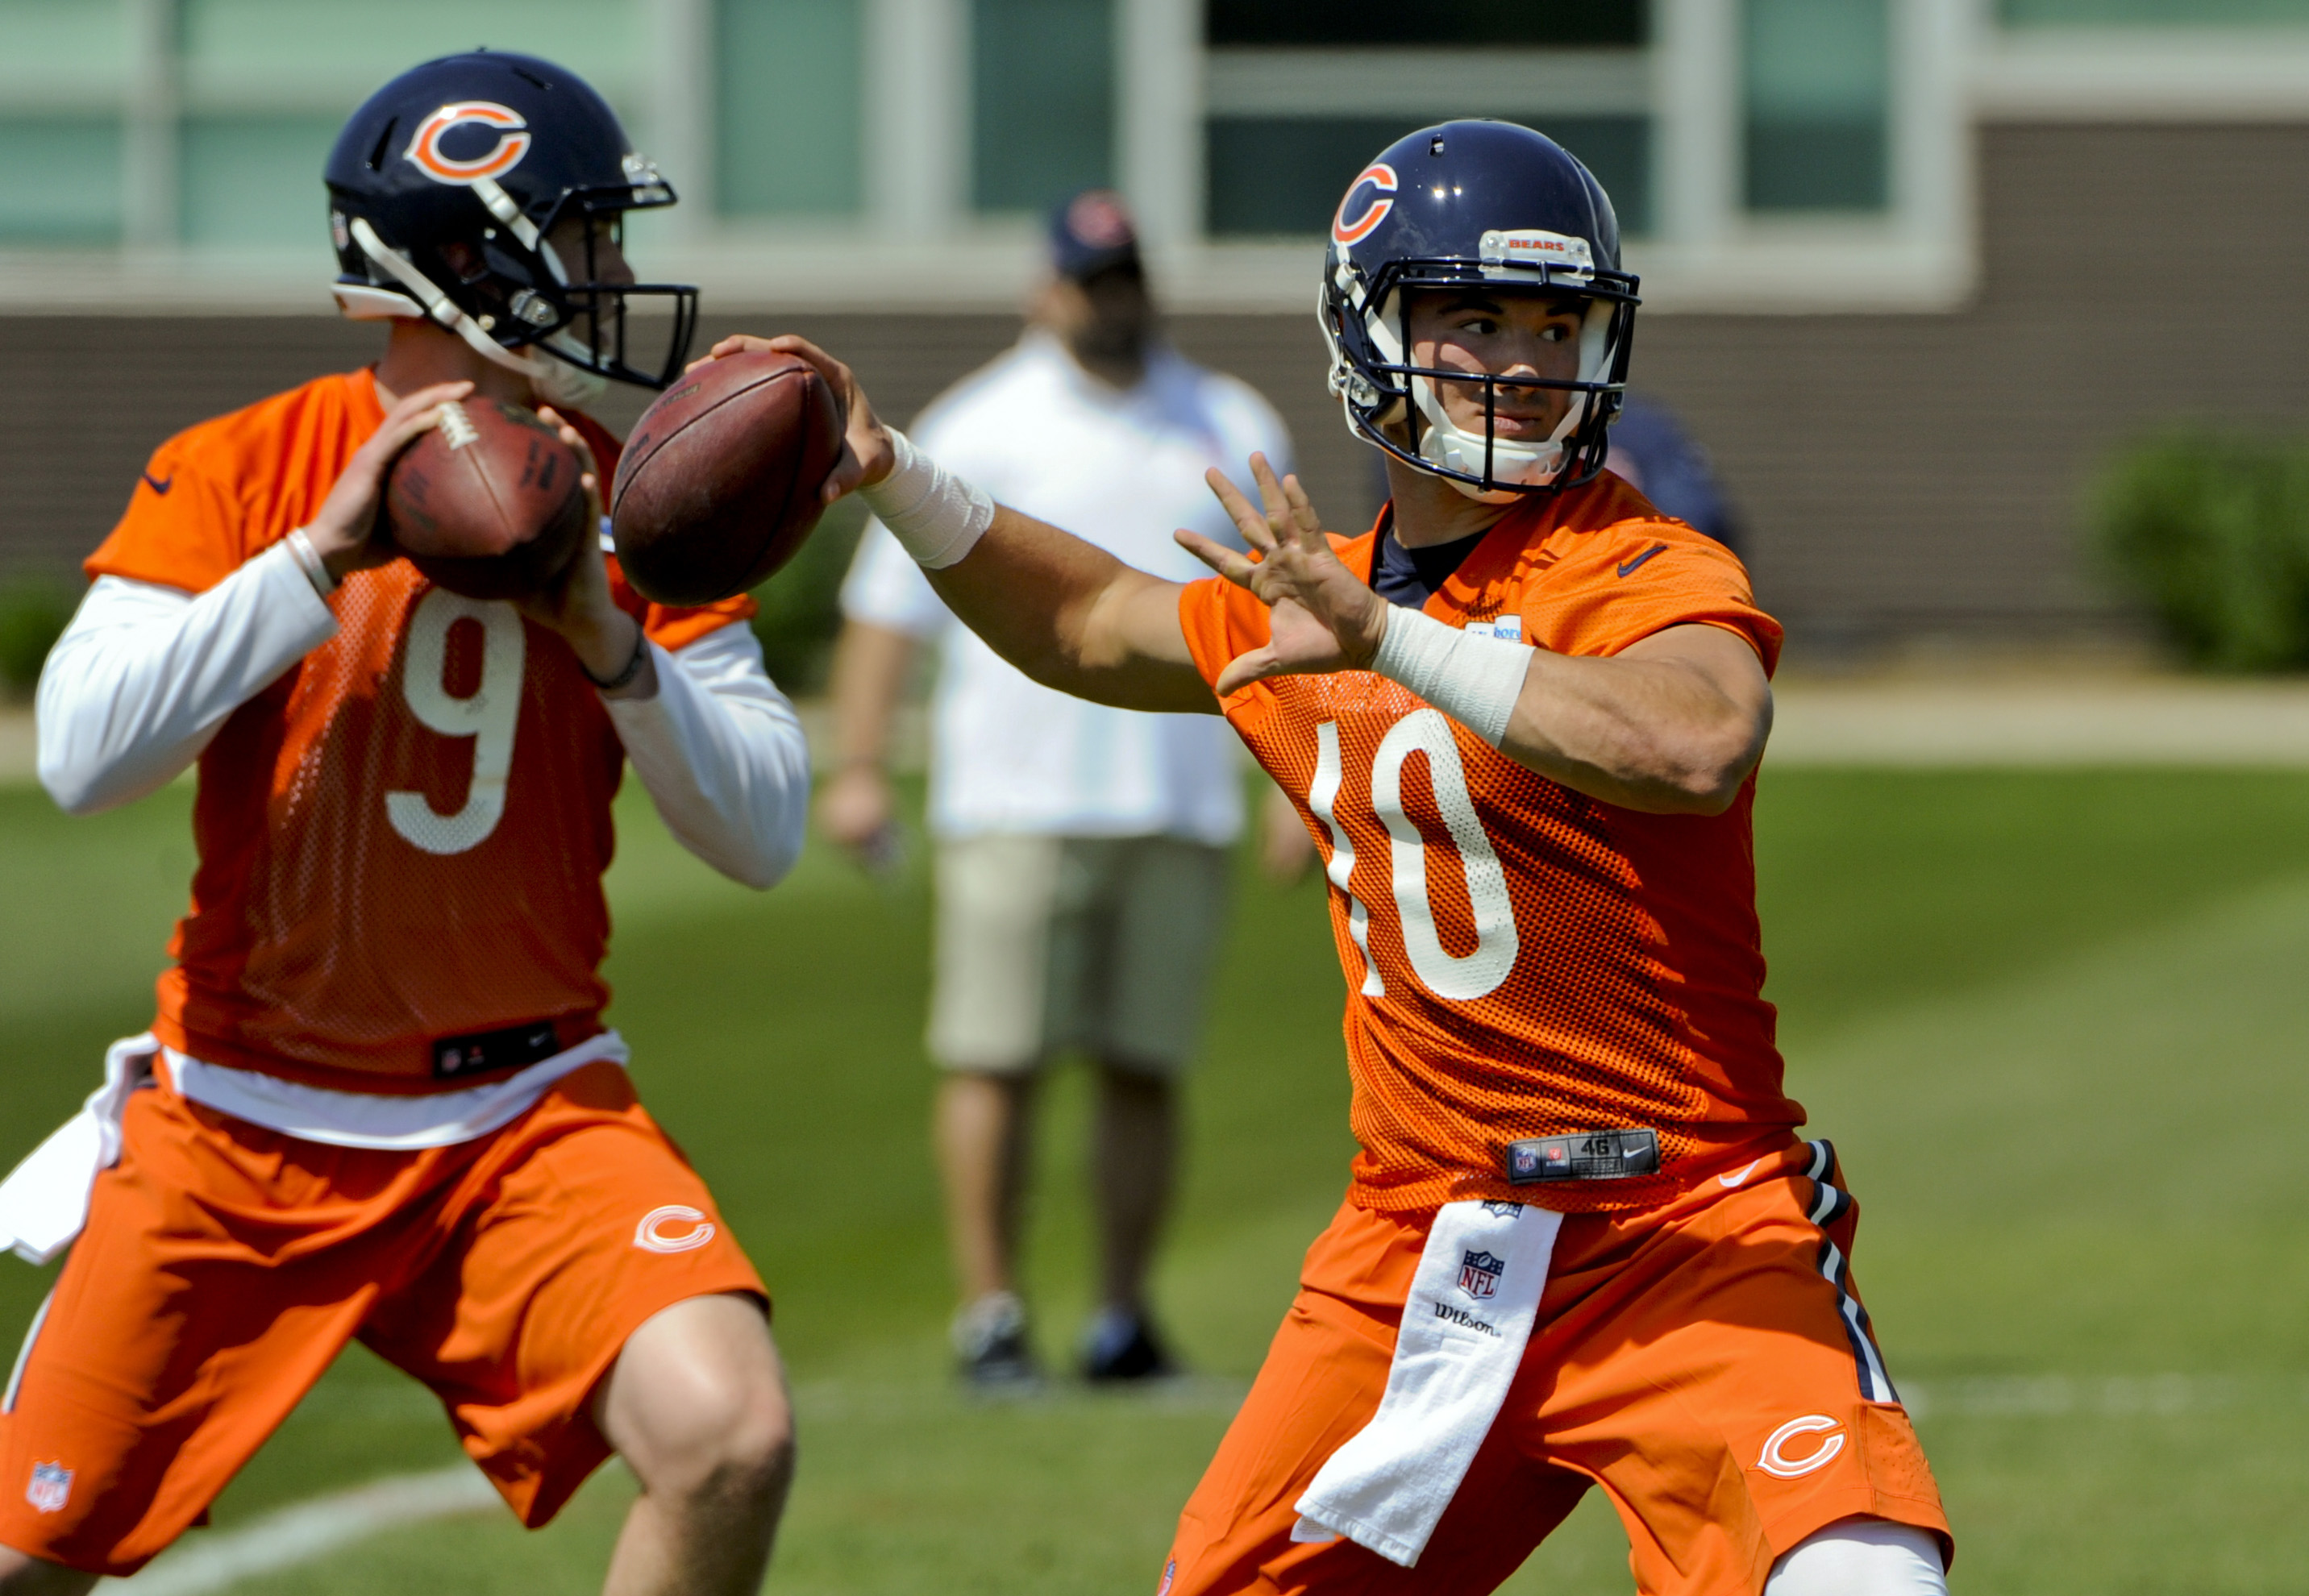 10053260-nfl-chicago-bears-rookie-minicamp-1